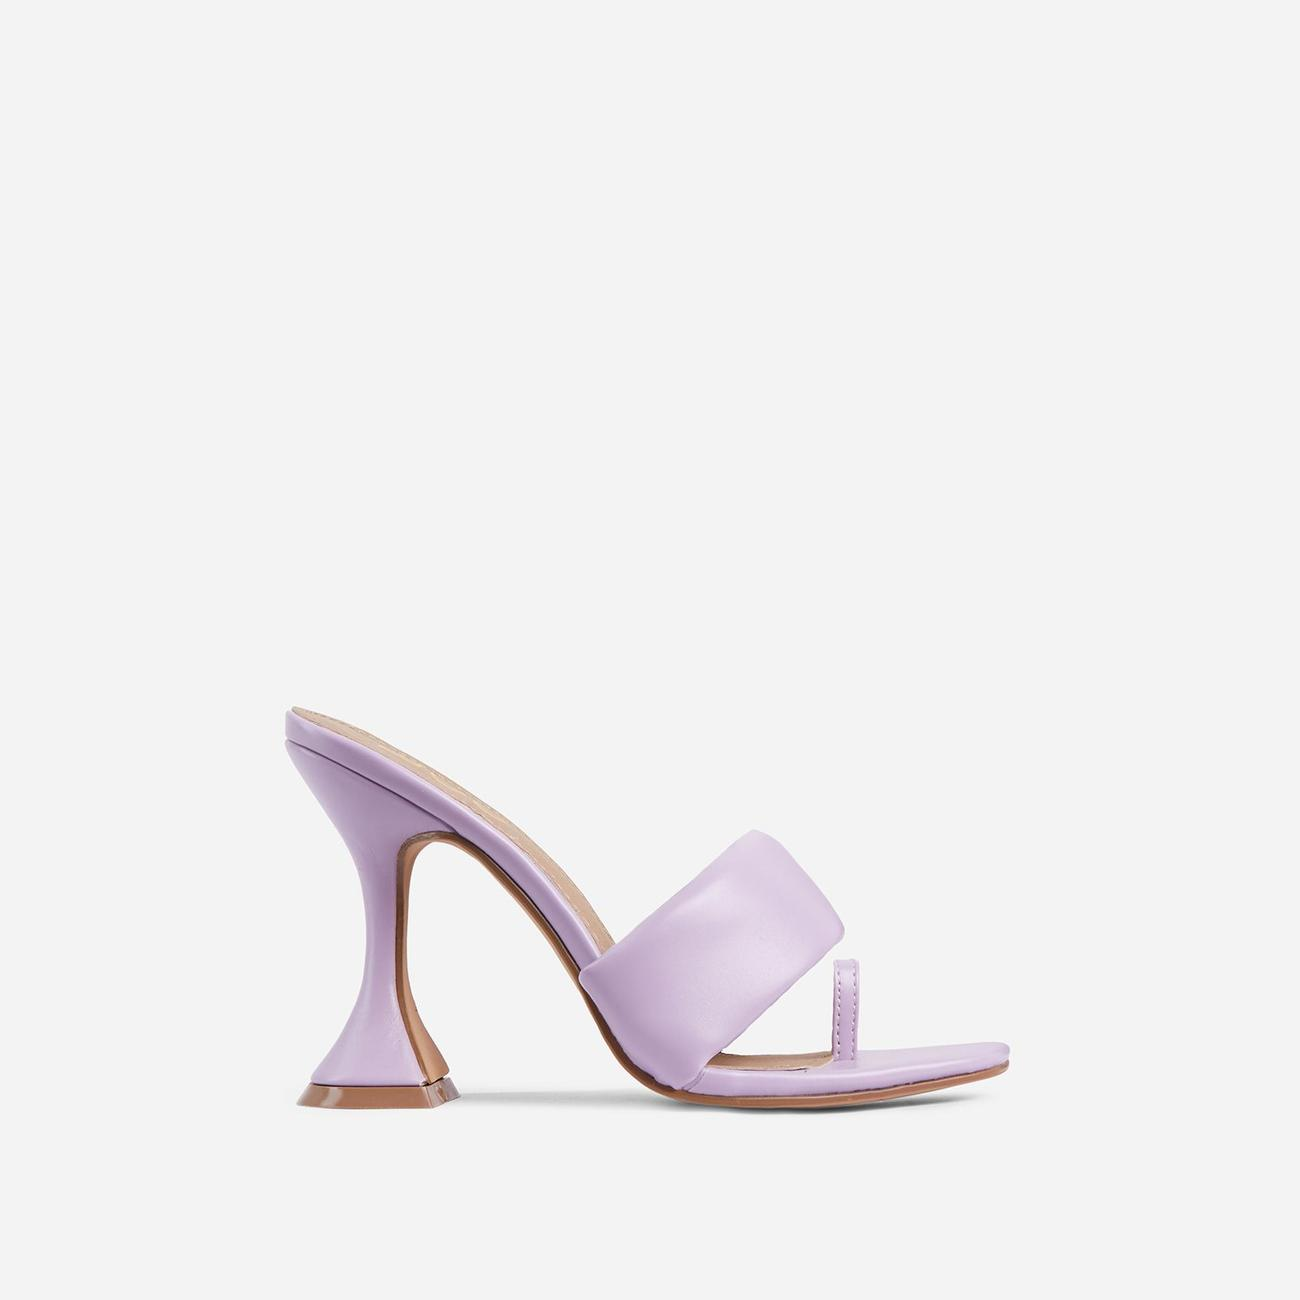 You-Wish Square Toe Padded Pyramid Heel Mule In Lilac Faux Leather Image 1